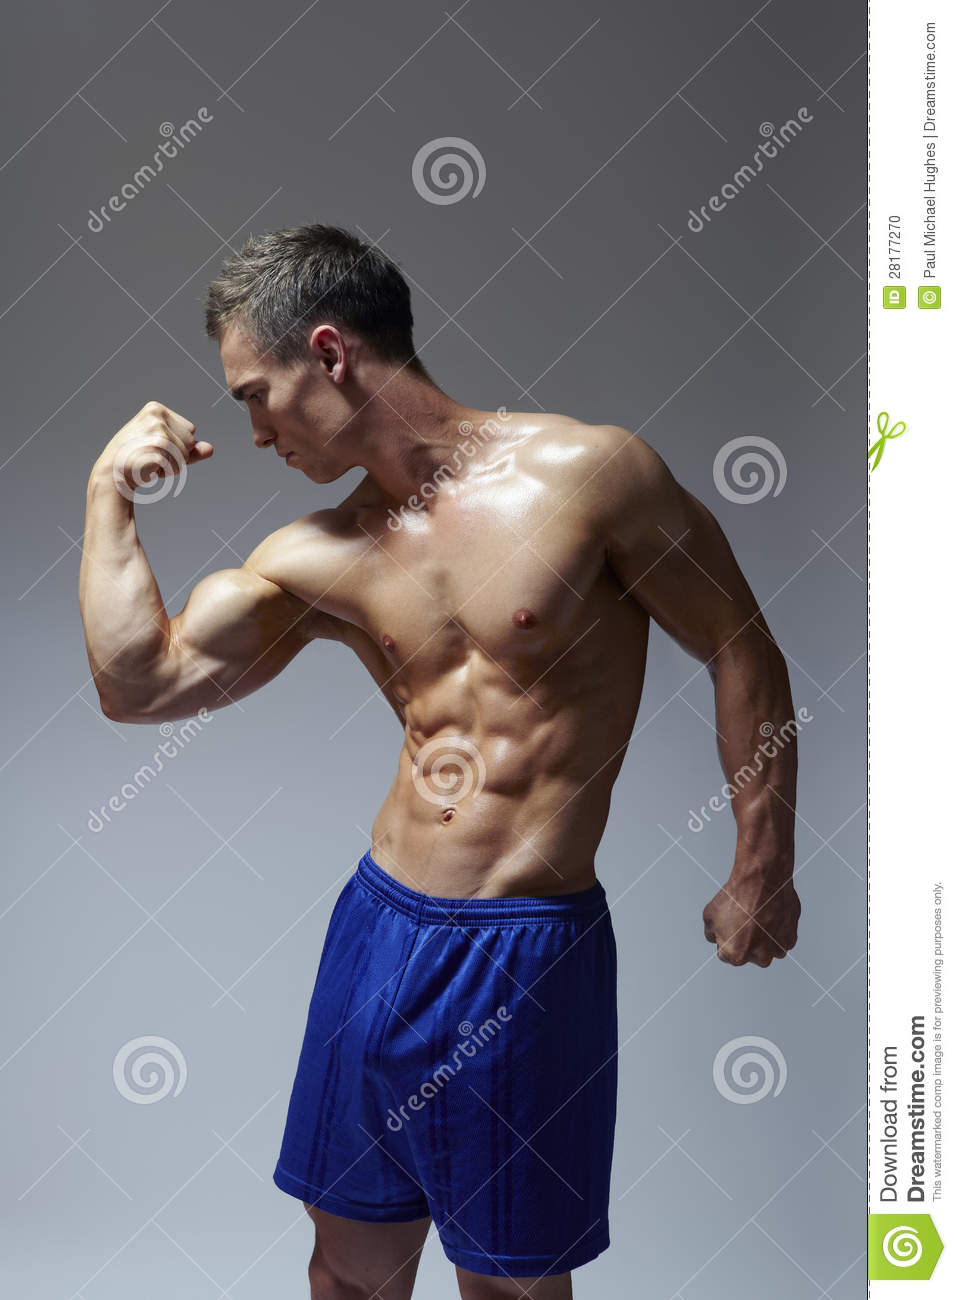 Muscular Young Man Flexing Arm Muscles Stock Photo - Image: 28177270